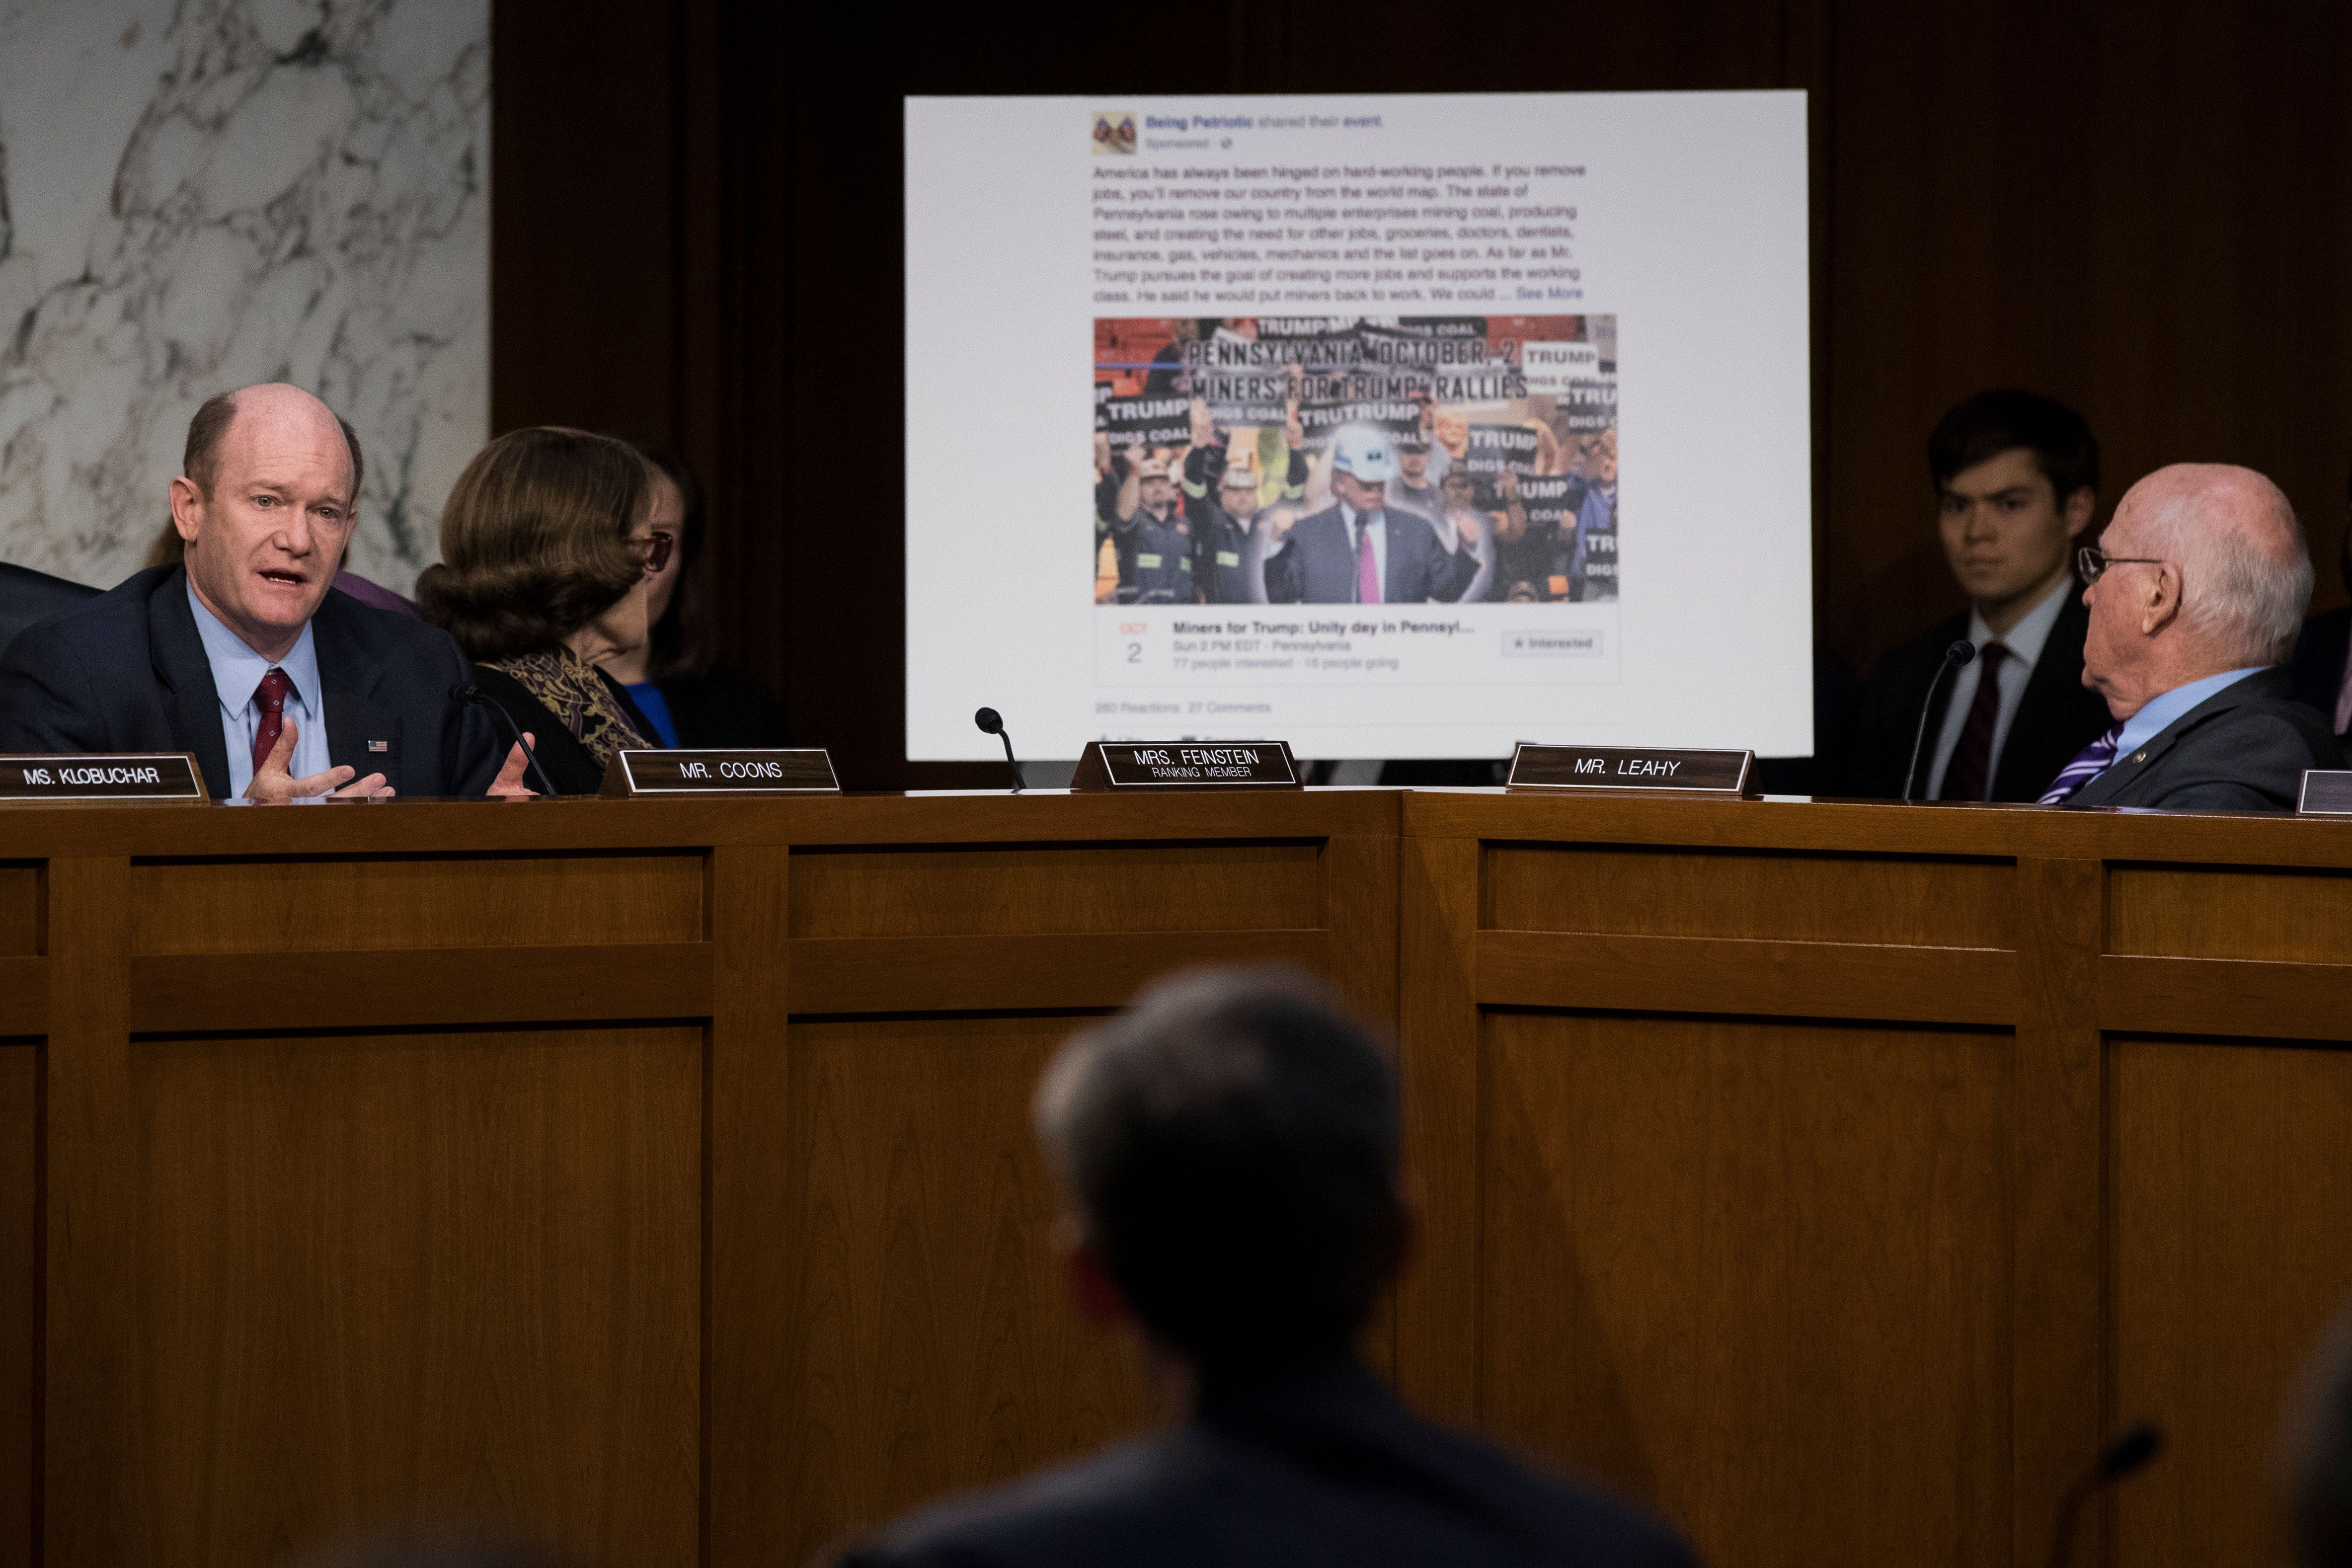 WASHINGTON, DC - OCTOBER 31: With a Facebook event page featuring a 'Miners For Trump' rally created by Russian operatives displayed behind him, Sen. Chris Coons (D-DE) questions witnesses during a Senate Judiciary Subcommittee on Crime and Terrorism hearing titled 'Extremist Content and Russian Disinformation Online' on Capitol Hill, October 31, 2017 in Washington, DC. The committee questioned the tech company representatives about attempts by Russian operatives to spread disinformation and purchase political ads on their platforms, and what efforts the companies plan to use to prevent similar incidents in future elections. (Drew Angerer/Getty Images)